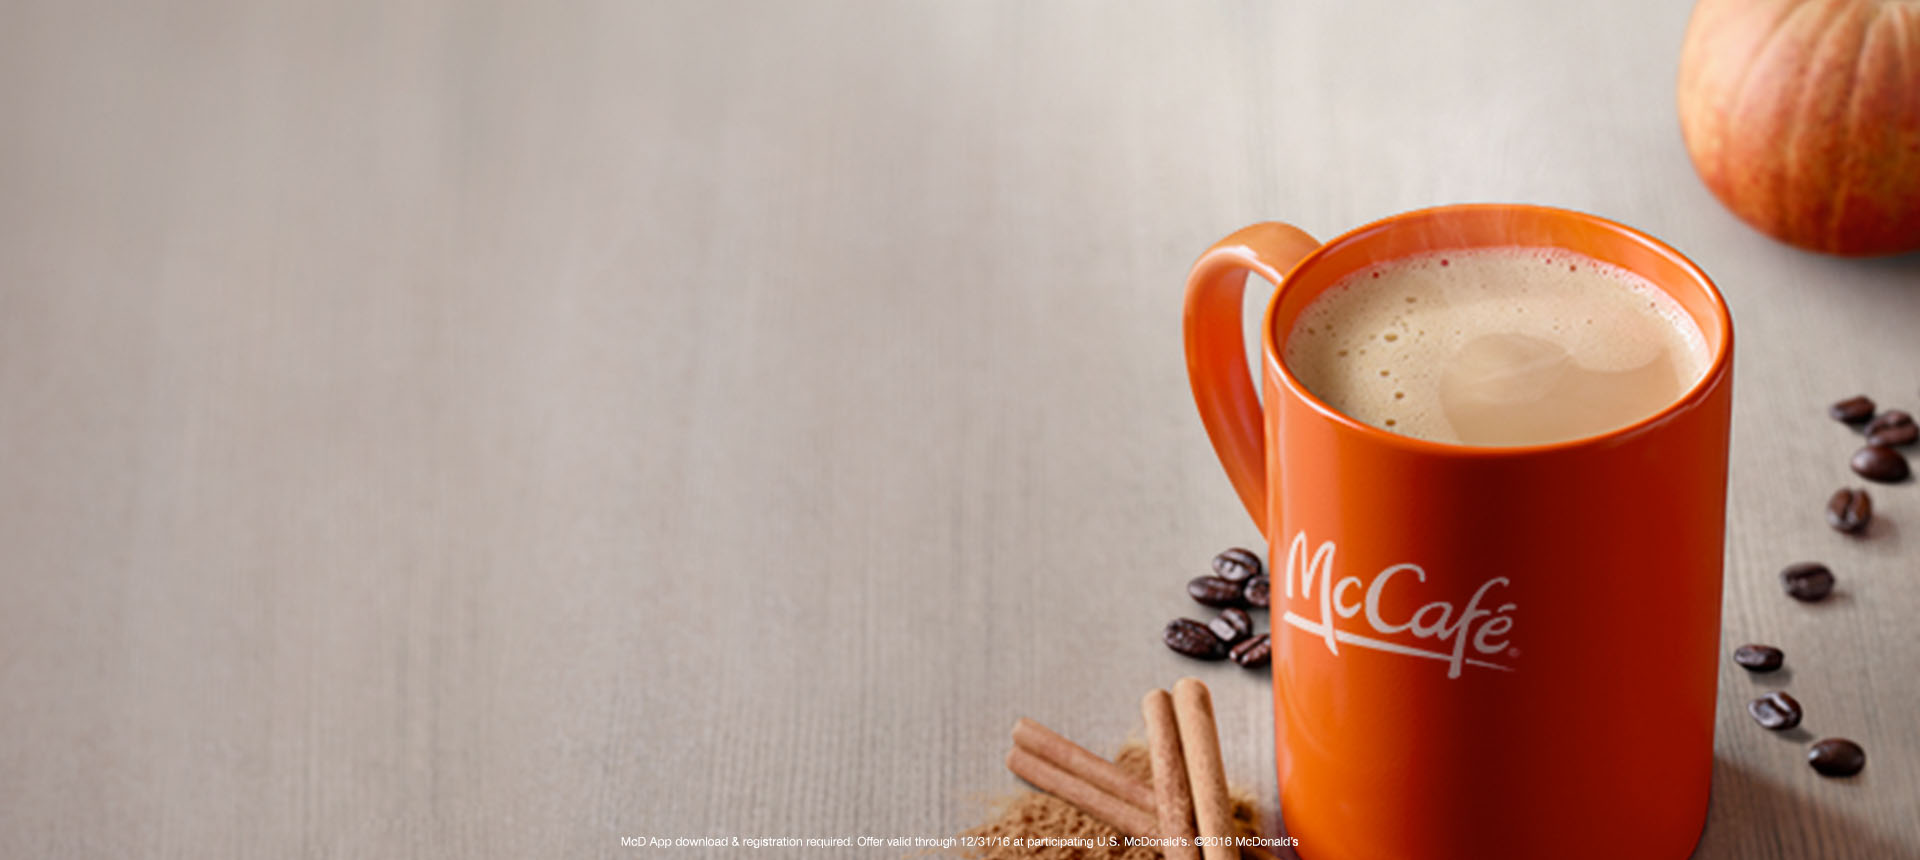 McCafé® Rewards: Buy 5 Drinks, Get 1 Free